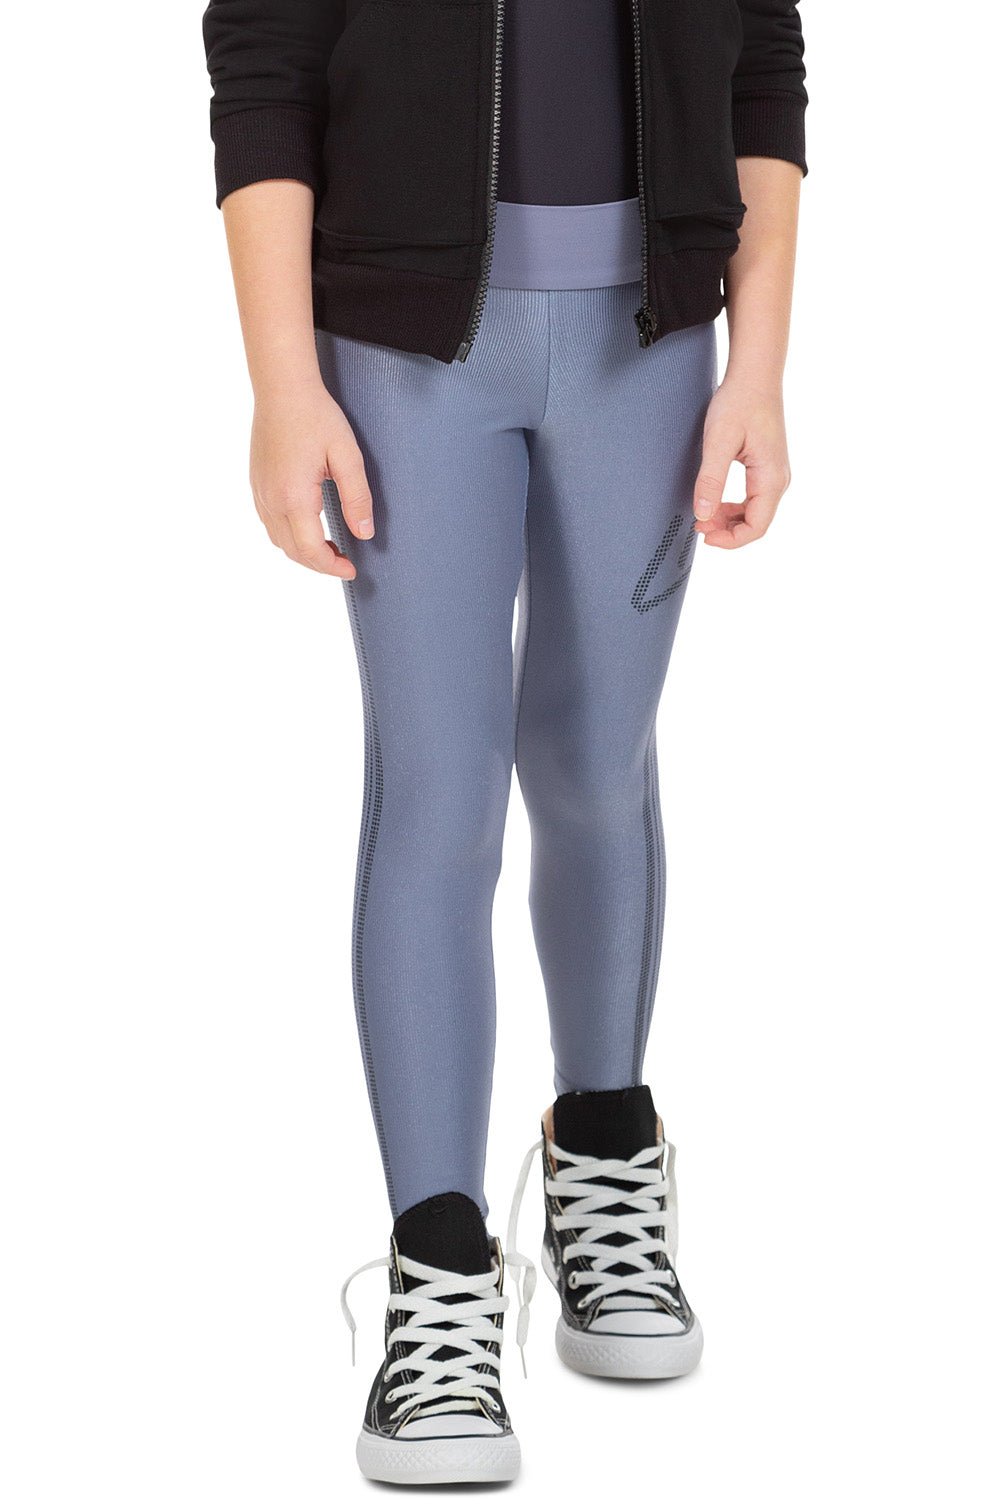 LIVE! Signature Kids Legging 1